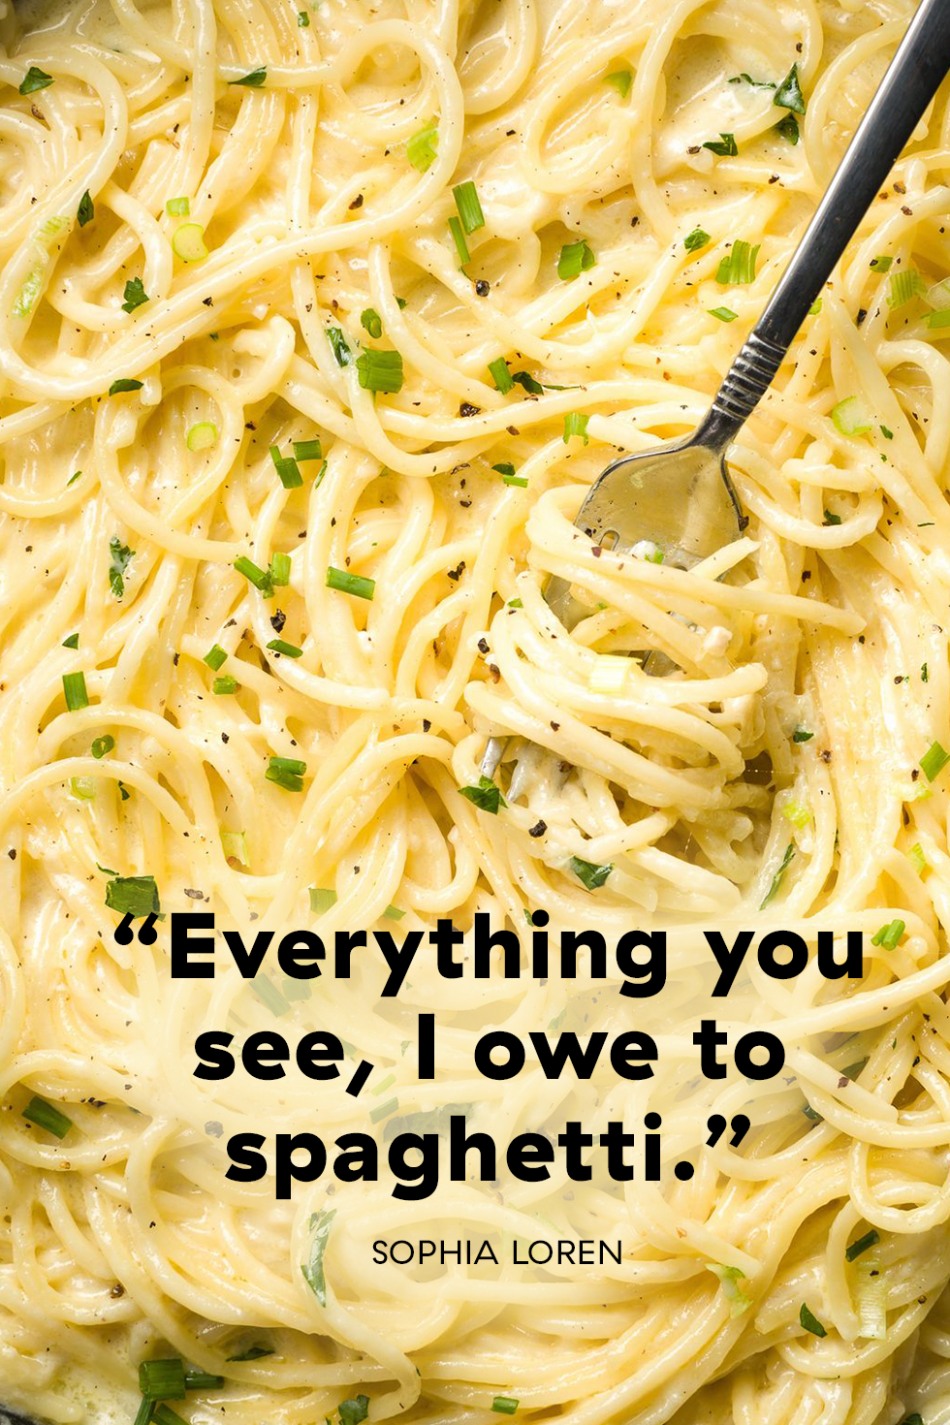 11 Best Food Quotes from Famous Chefs - Great Sayings About Eating